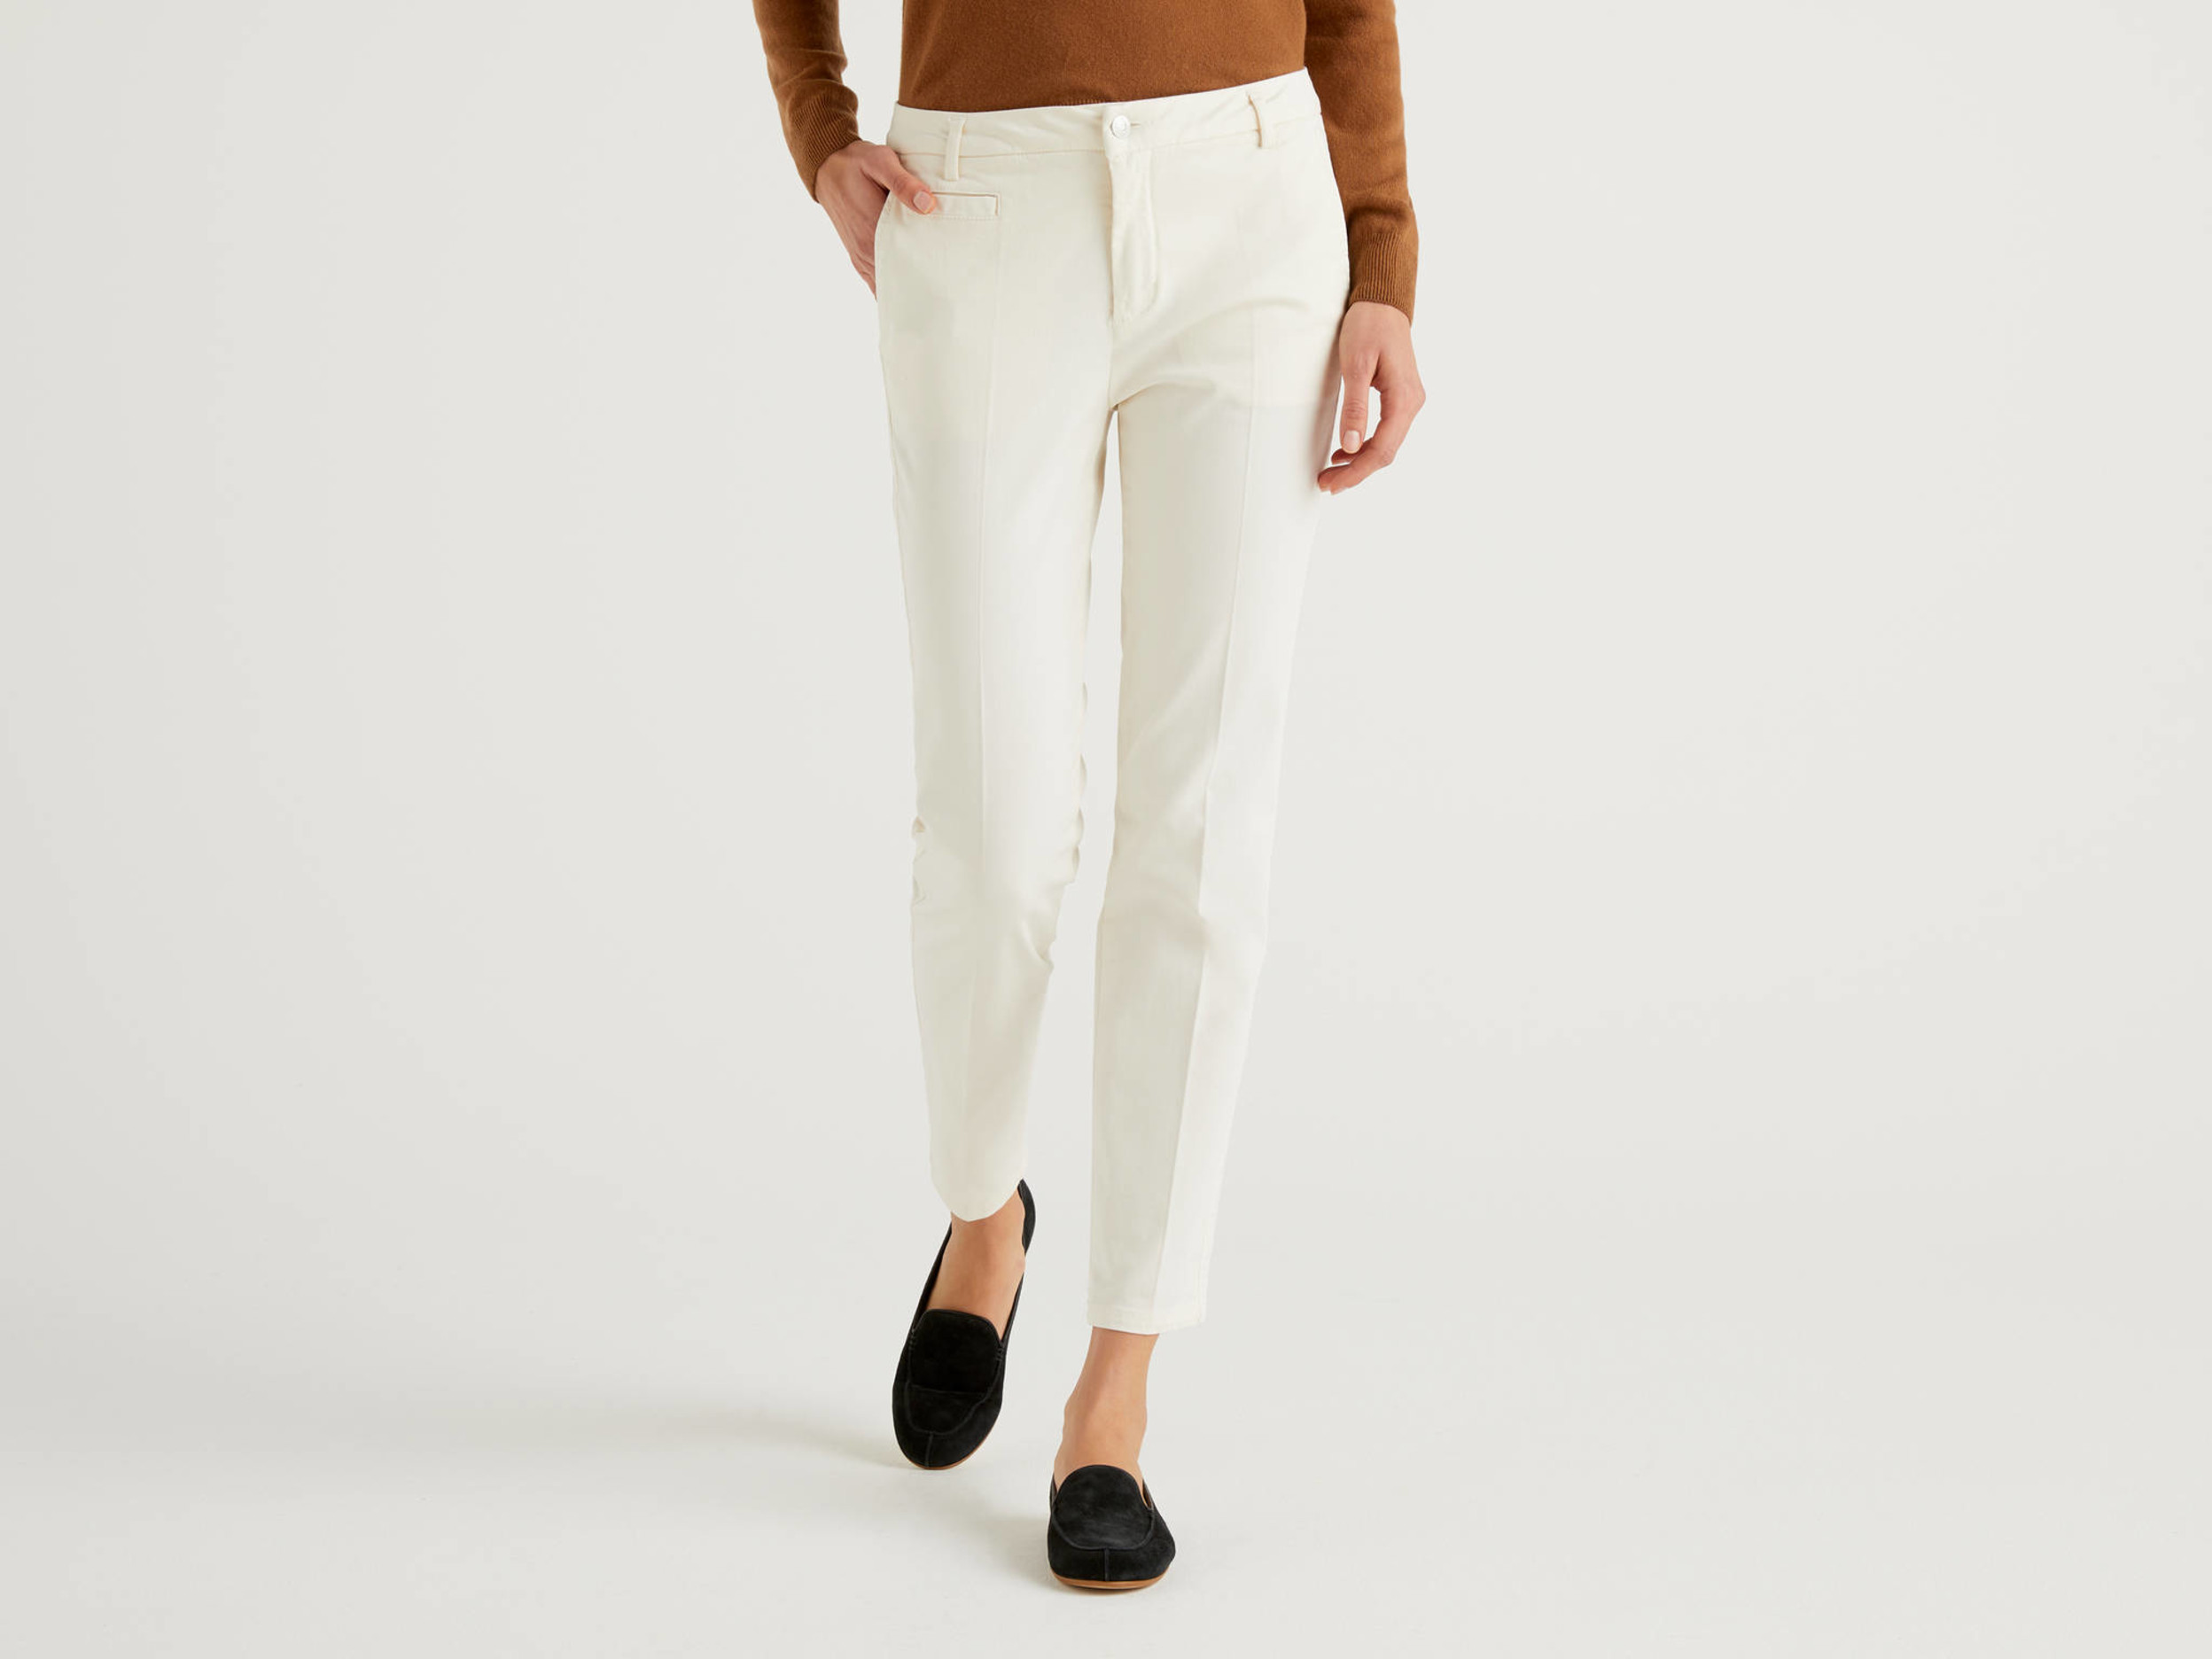 Benetton Online exclusive, Chino Slim Fit In Cotone Bianco Panna, Bianco Panna, Donna